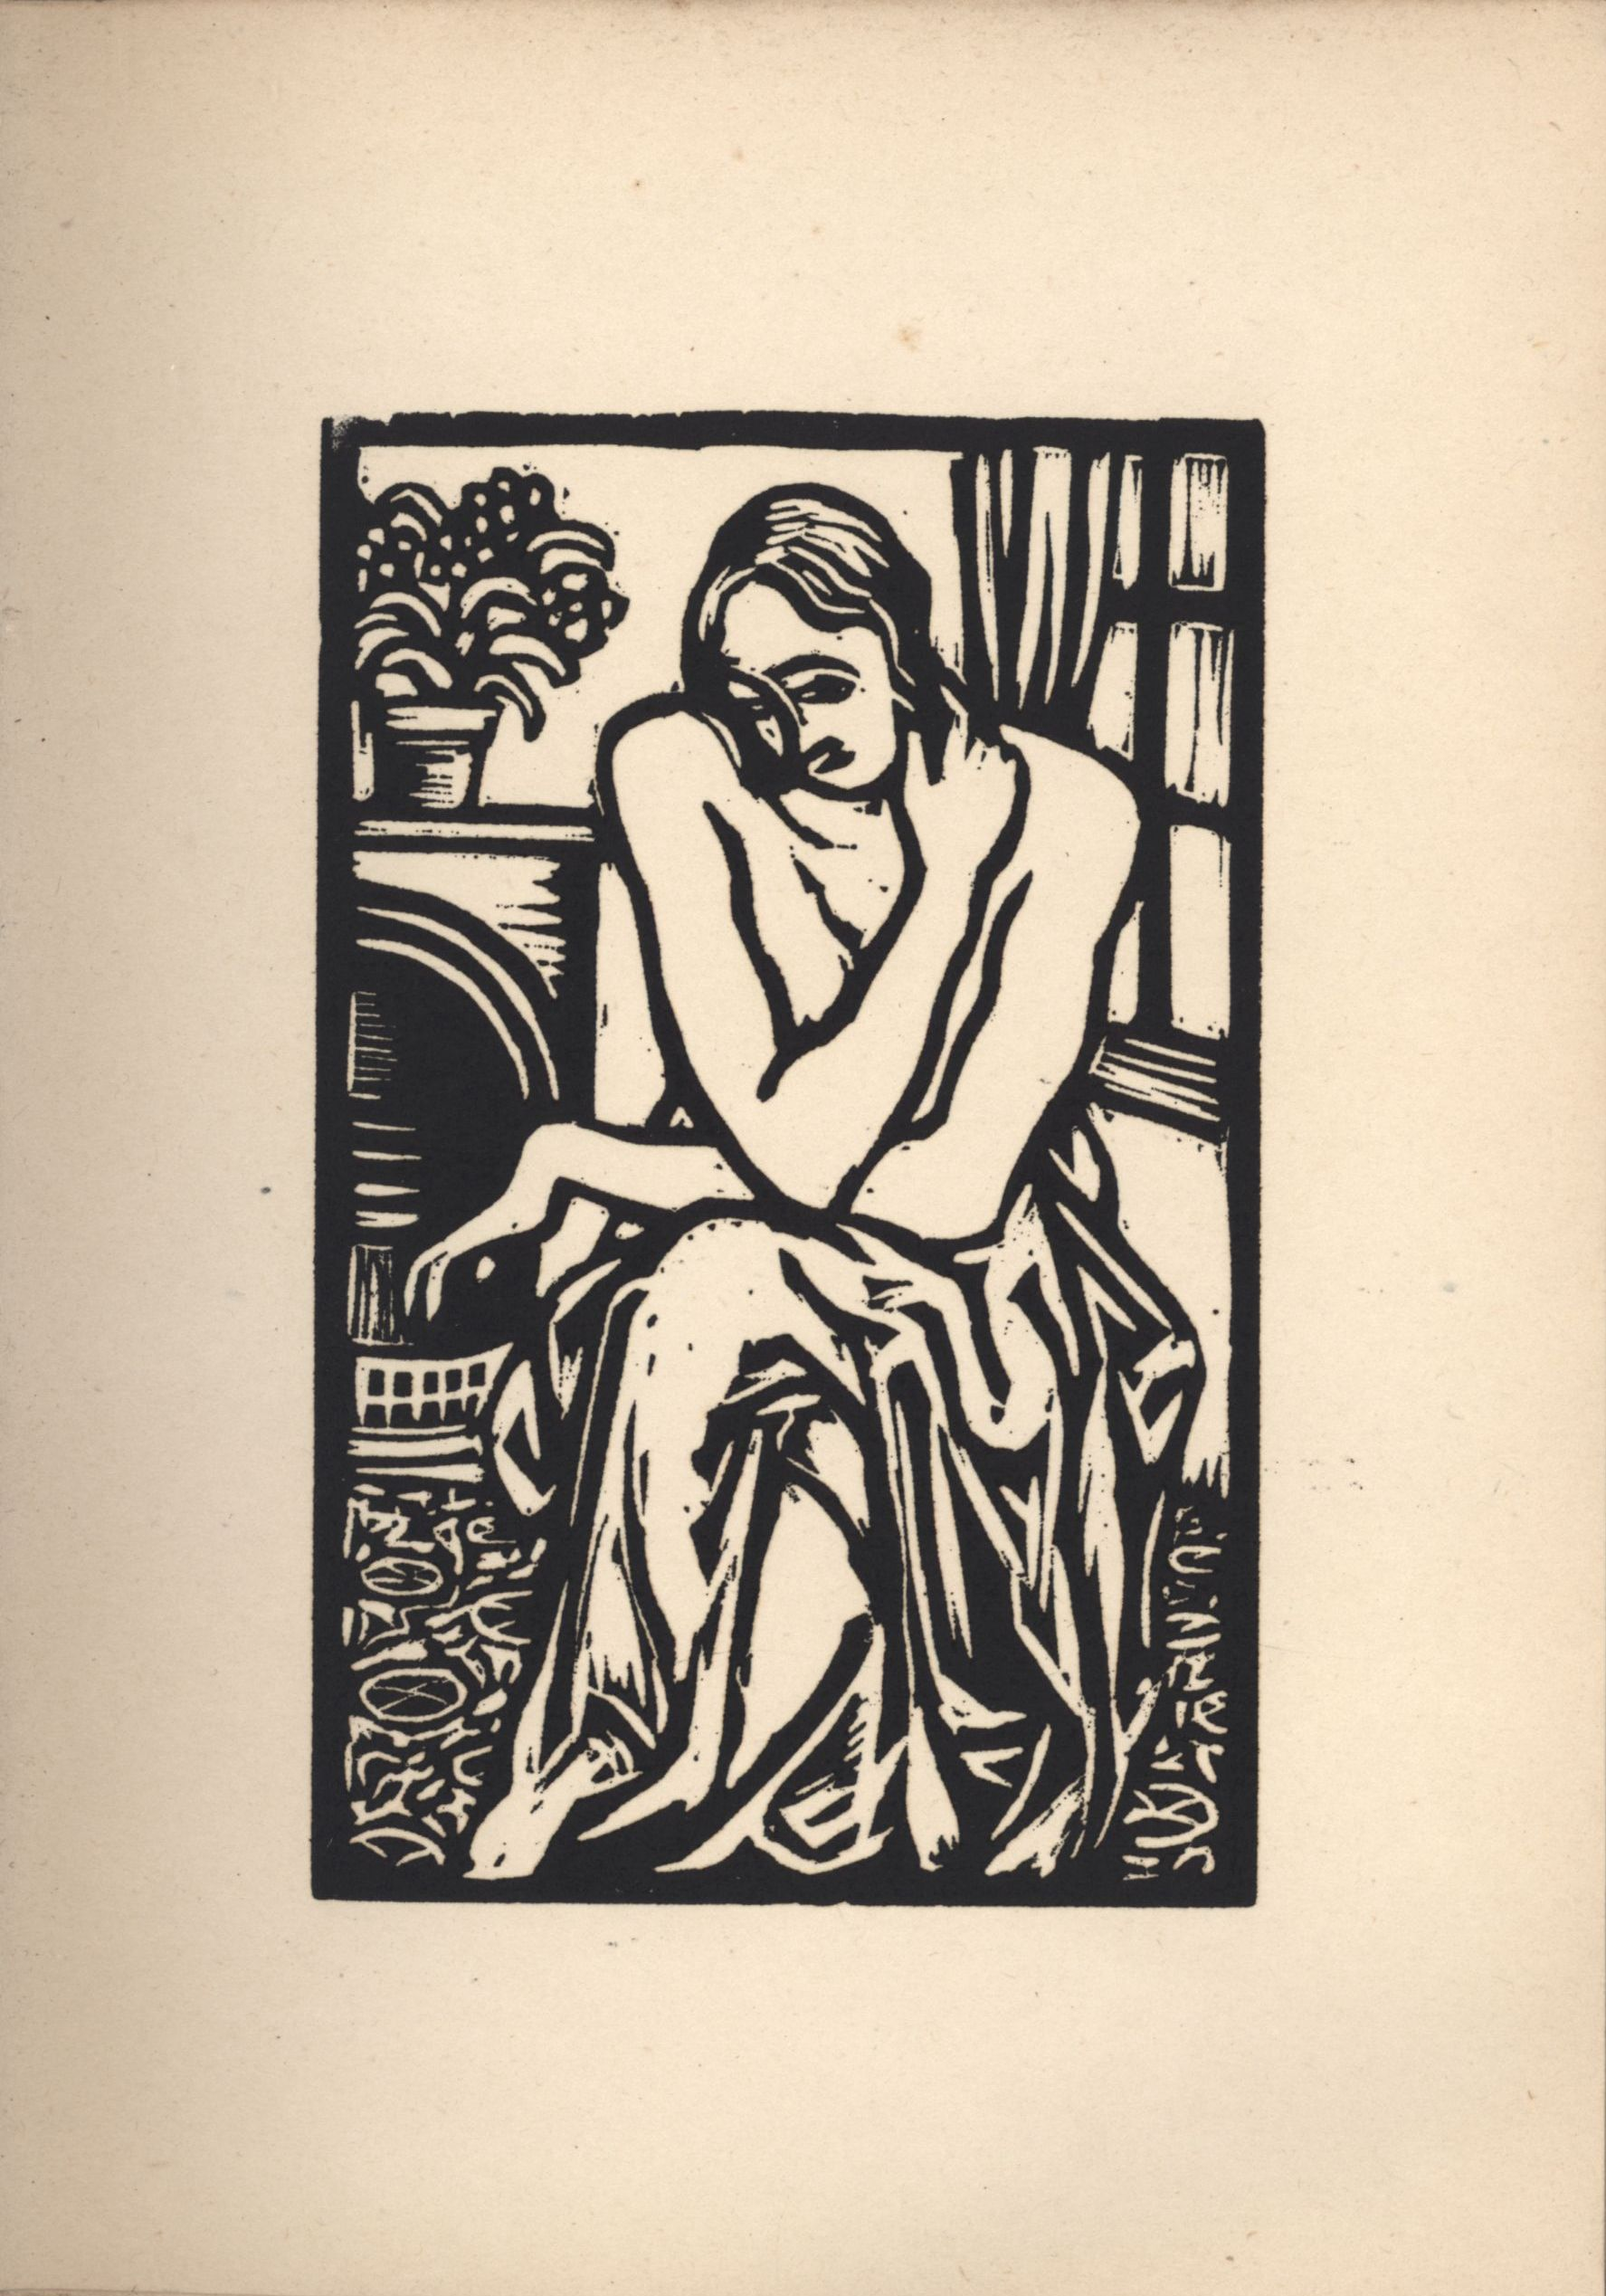 Tenth woodcut from Roger Fry's 'Twelve Original Woodcuts'.